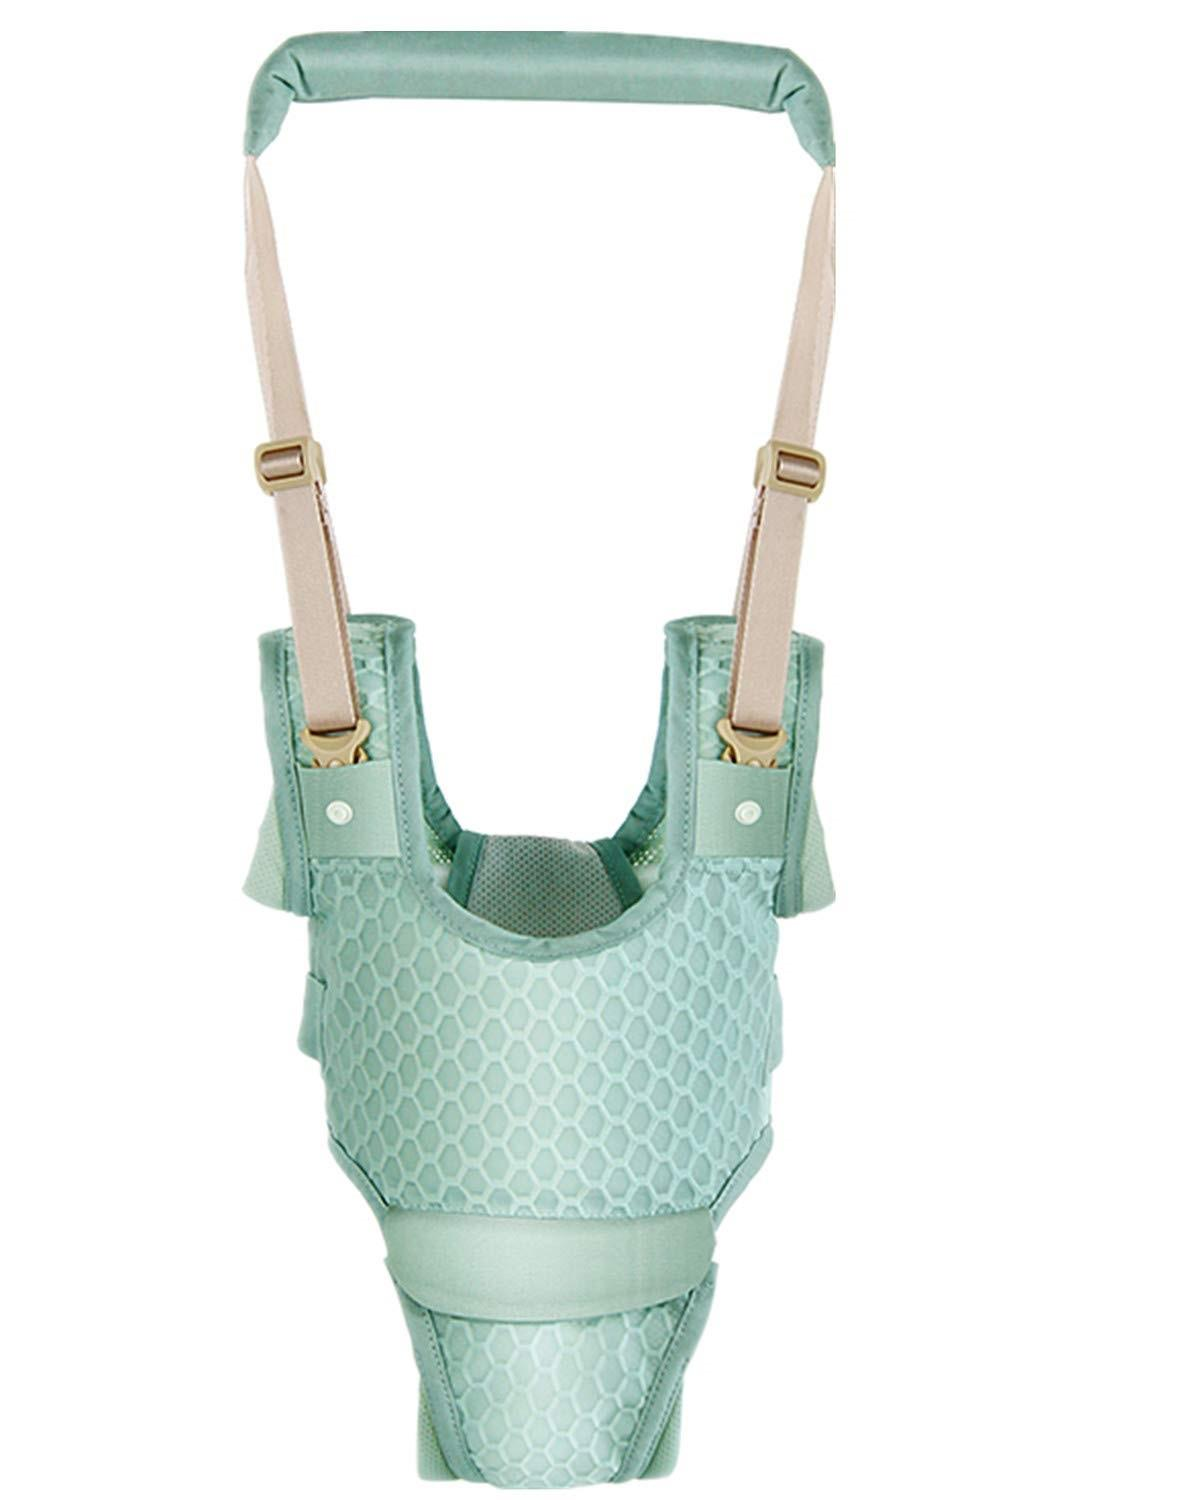 BABY HARNESS - MINT GREEN